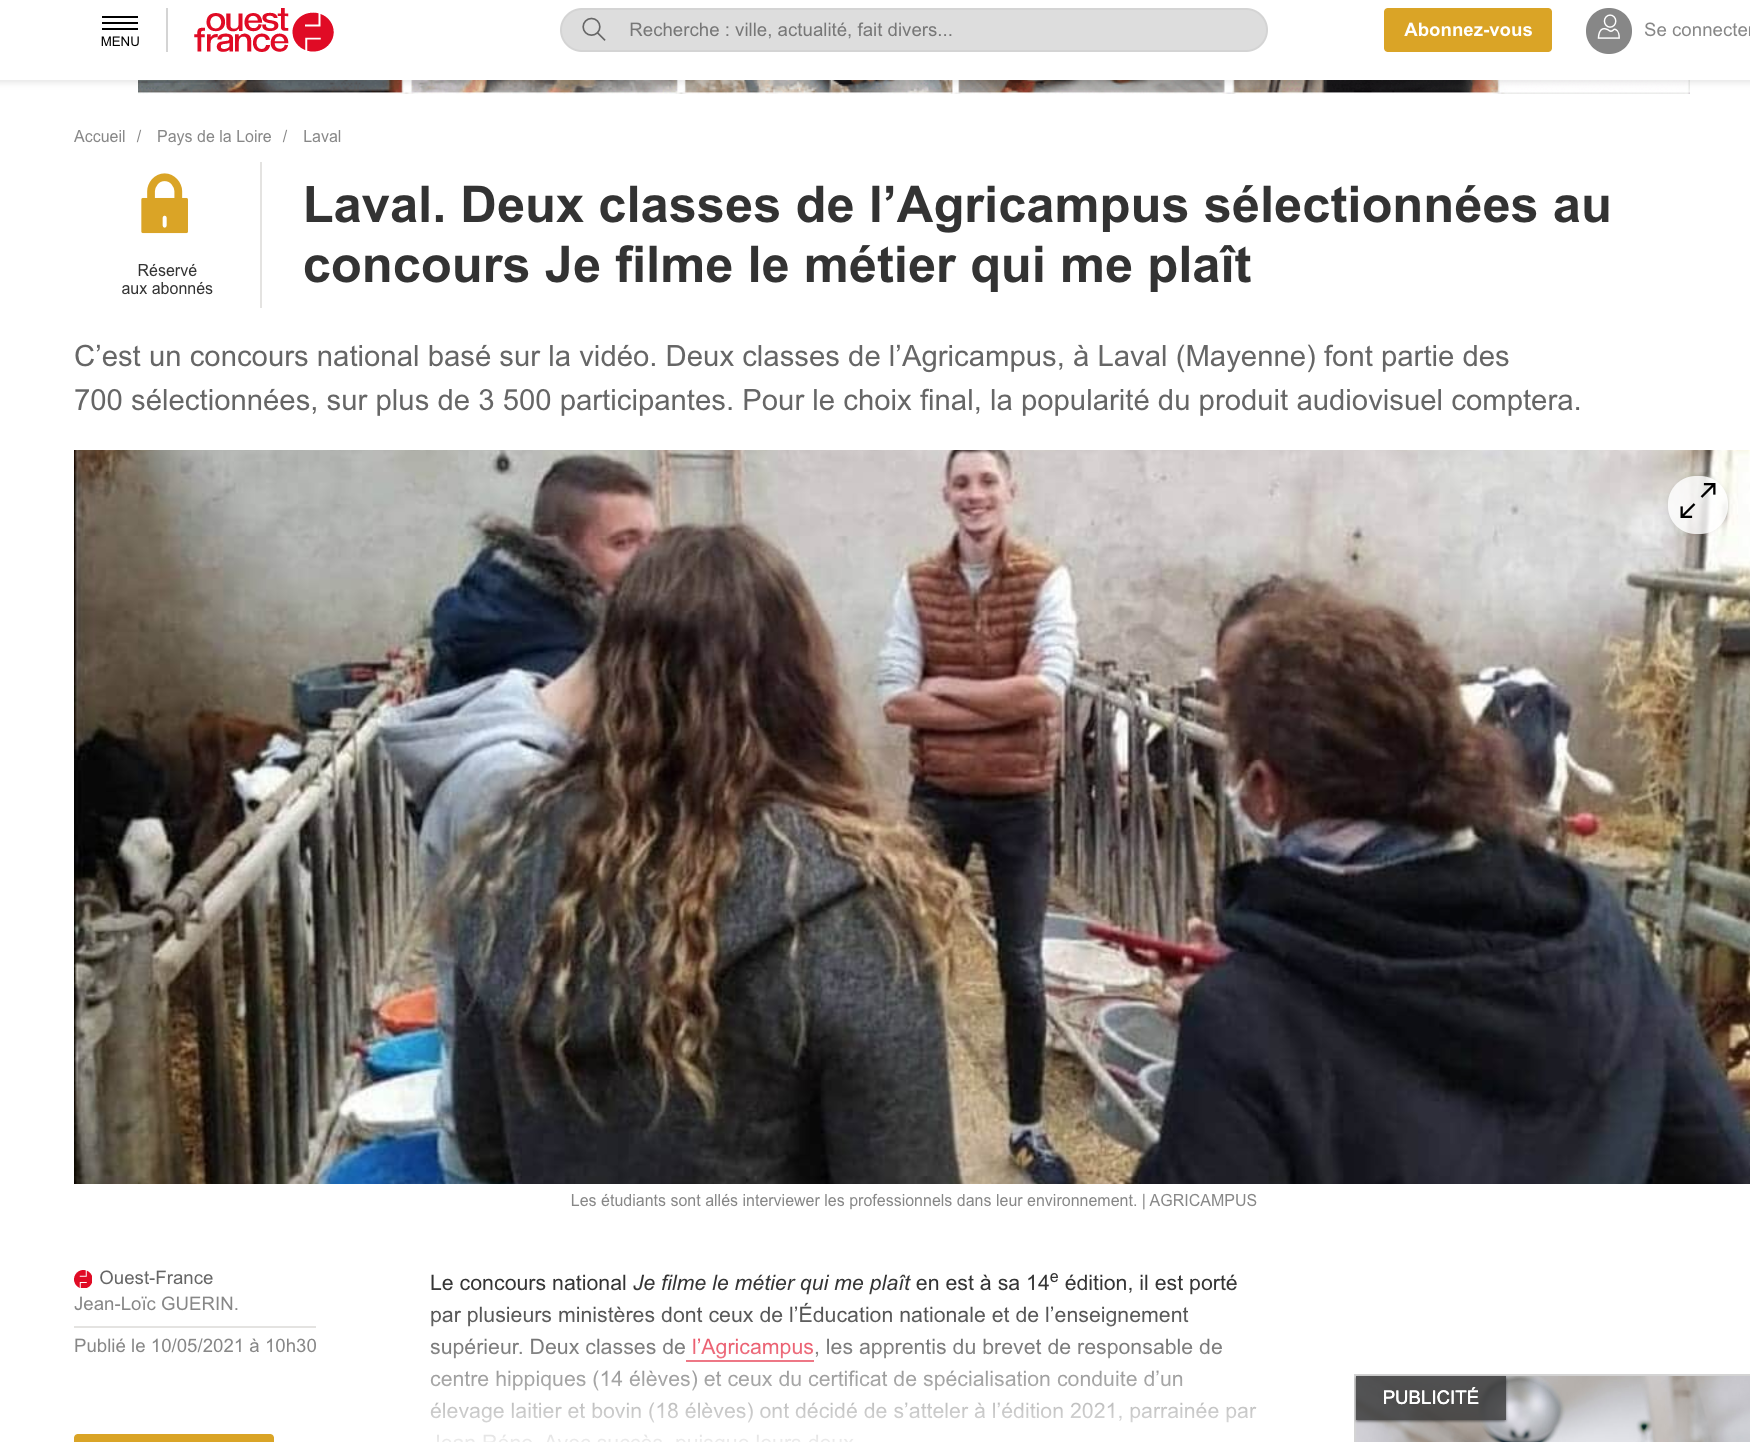 Ouest-France - 10/05/2021